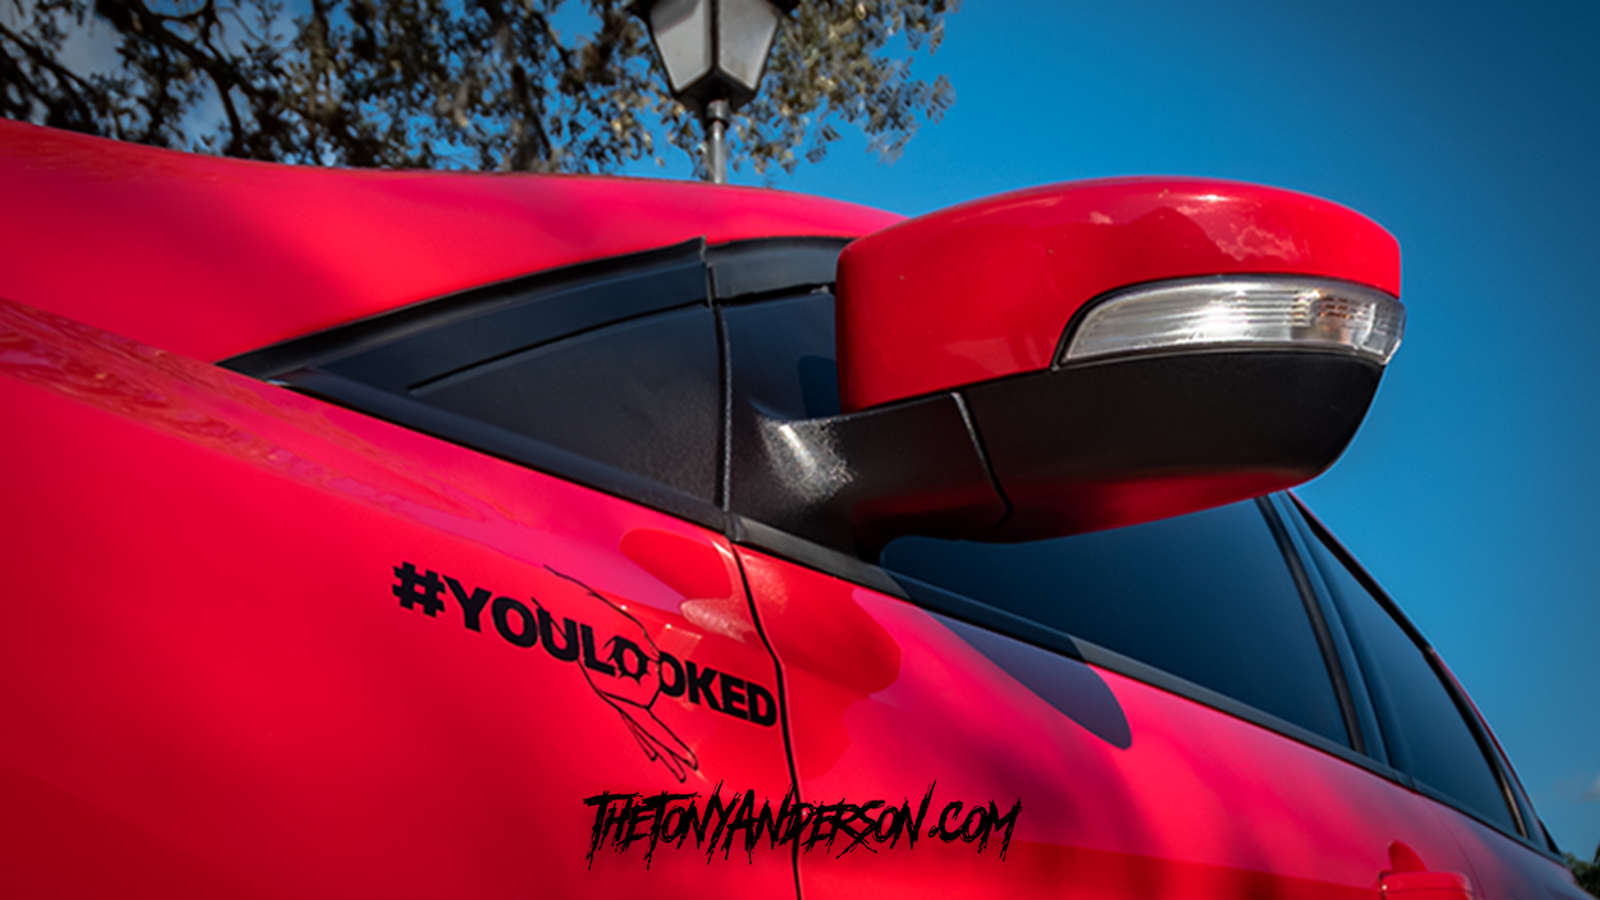 #YOULOOKED Decal